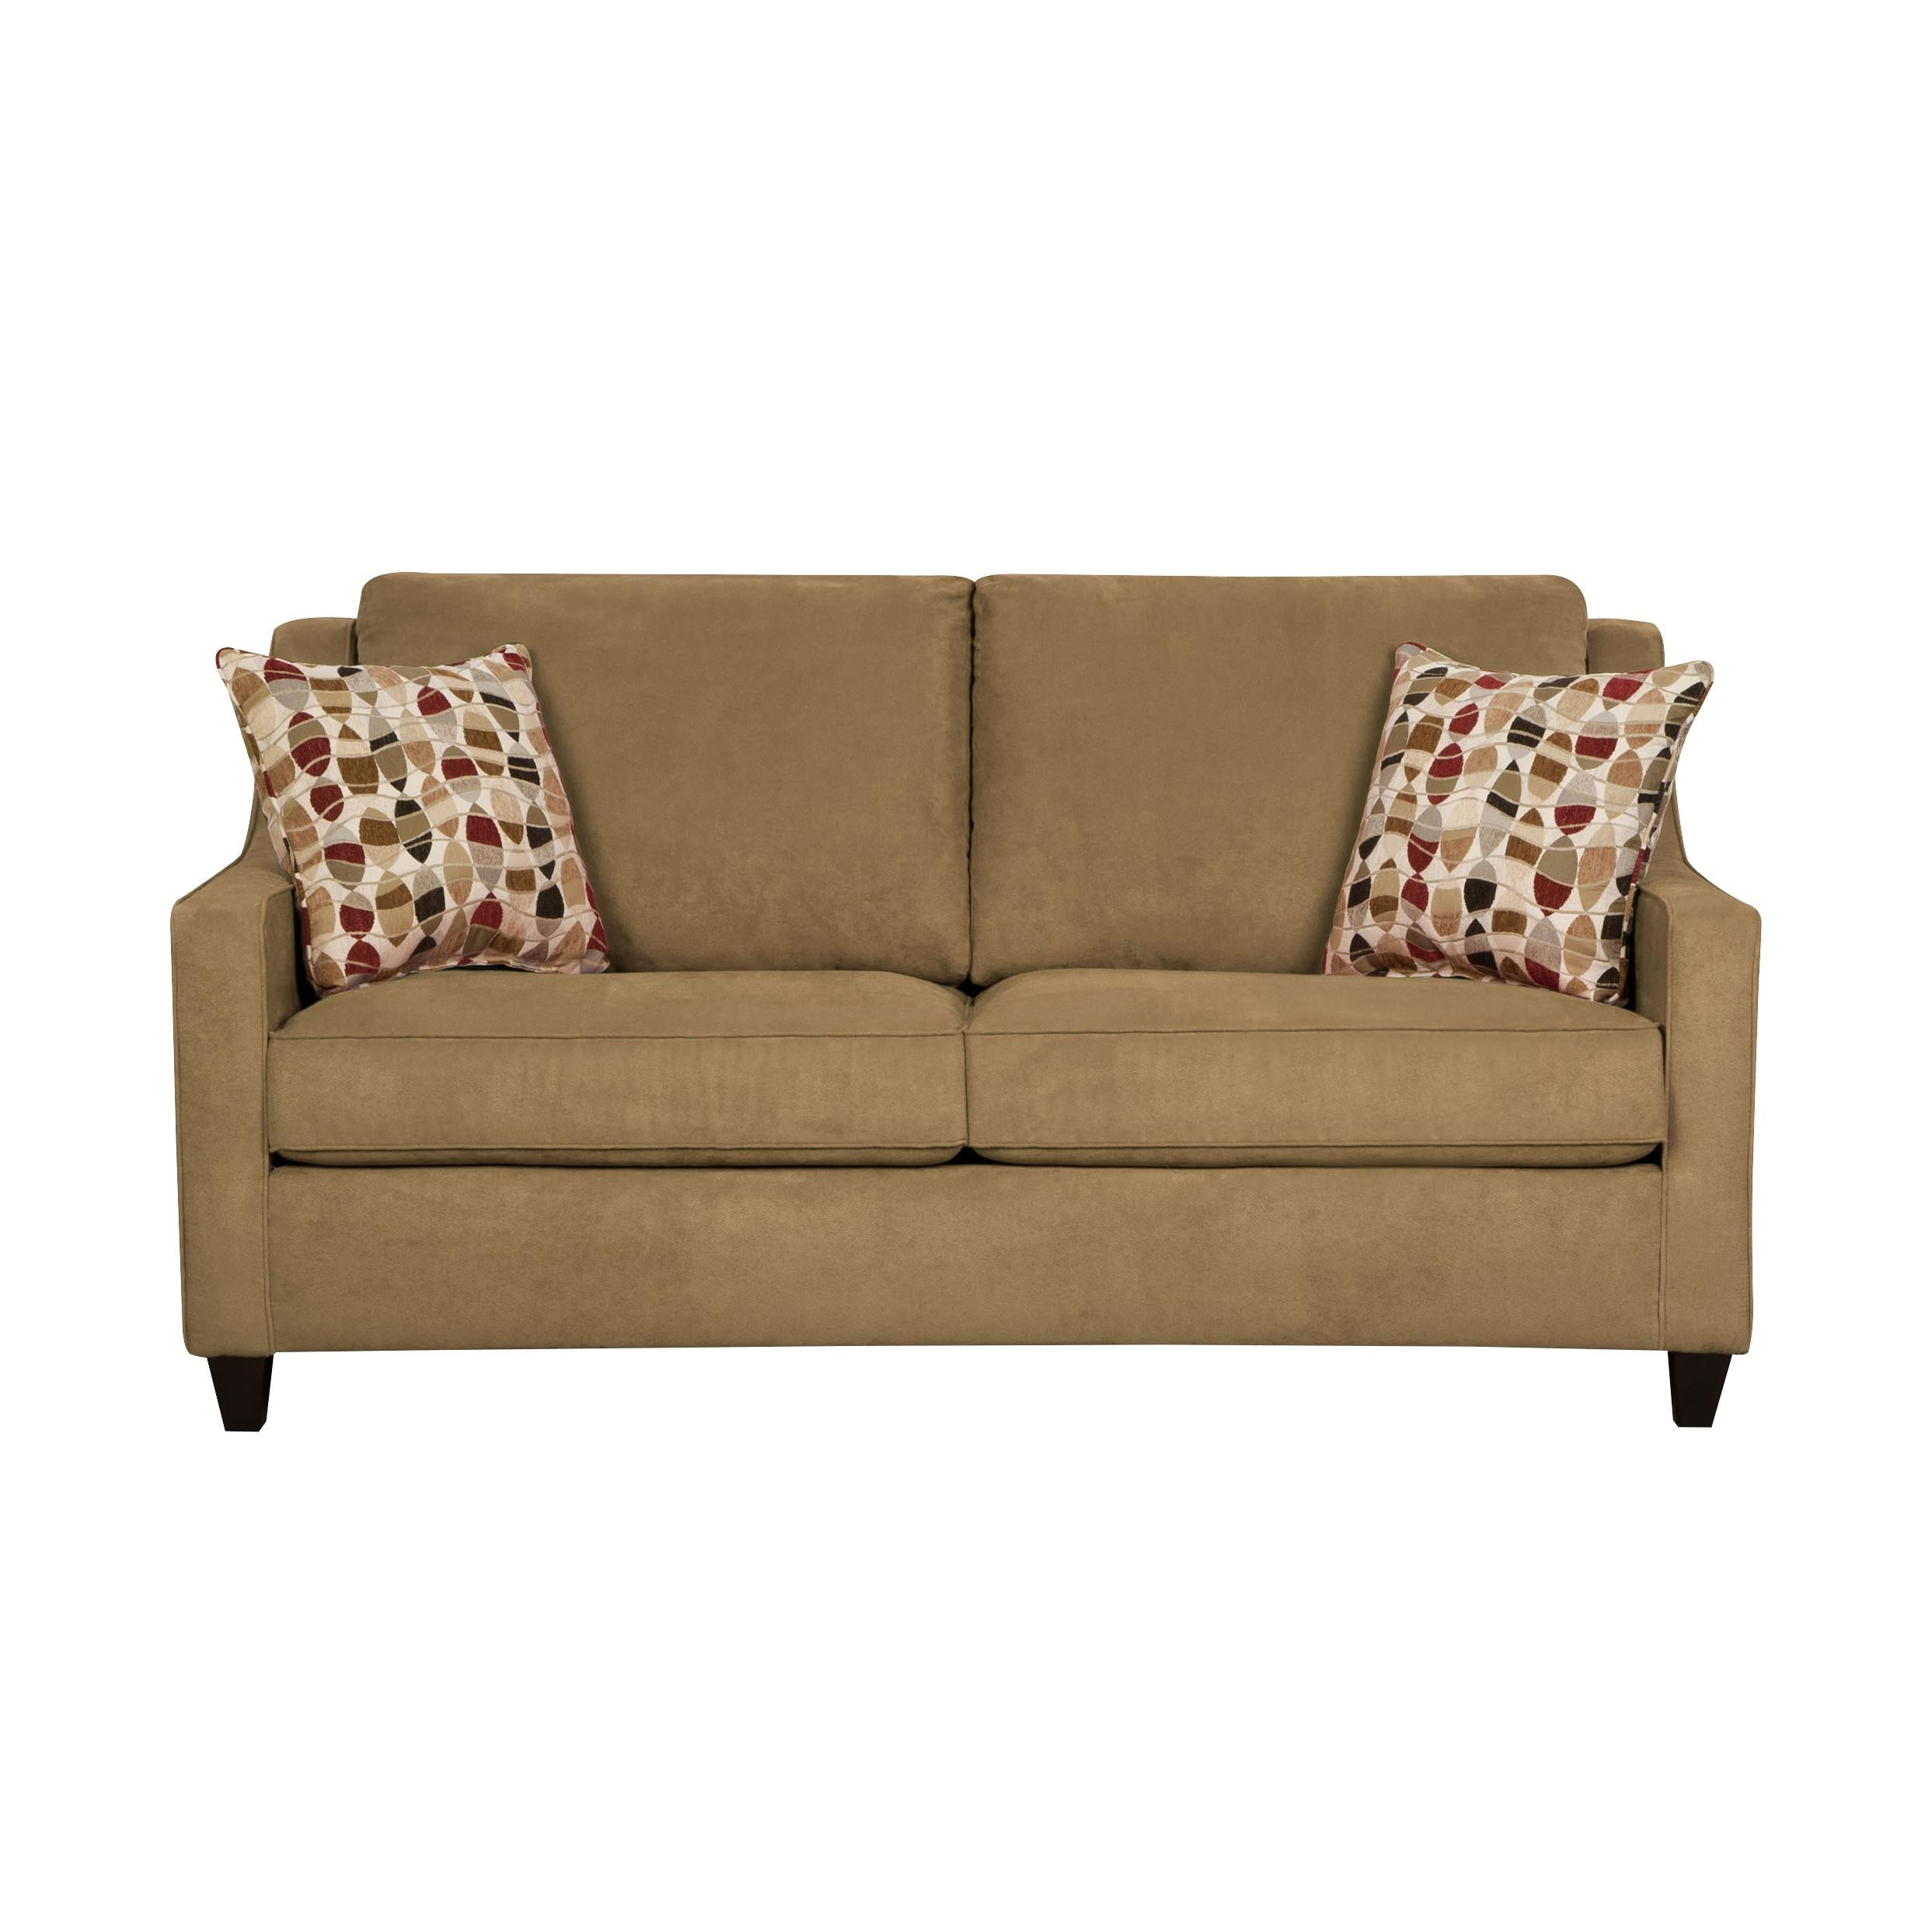 Furniture & Rug: Cozy Loveseat Sleeper For Home Furniture Idea For Loveseat Twin Sleeper Sofas (View 19 of 20)